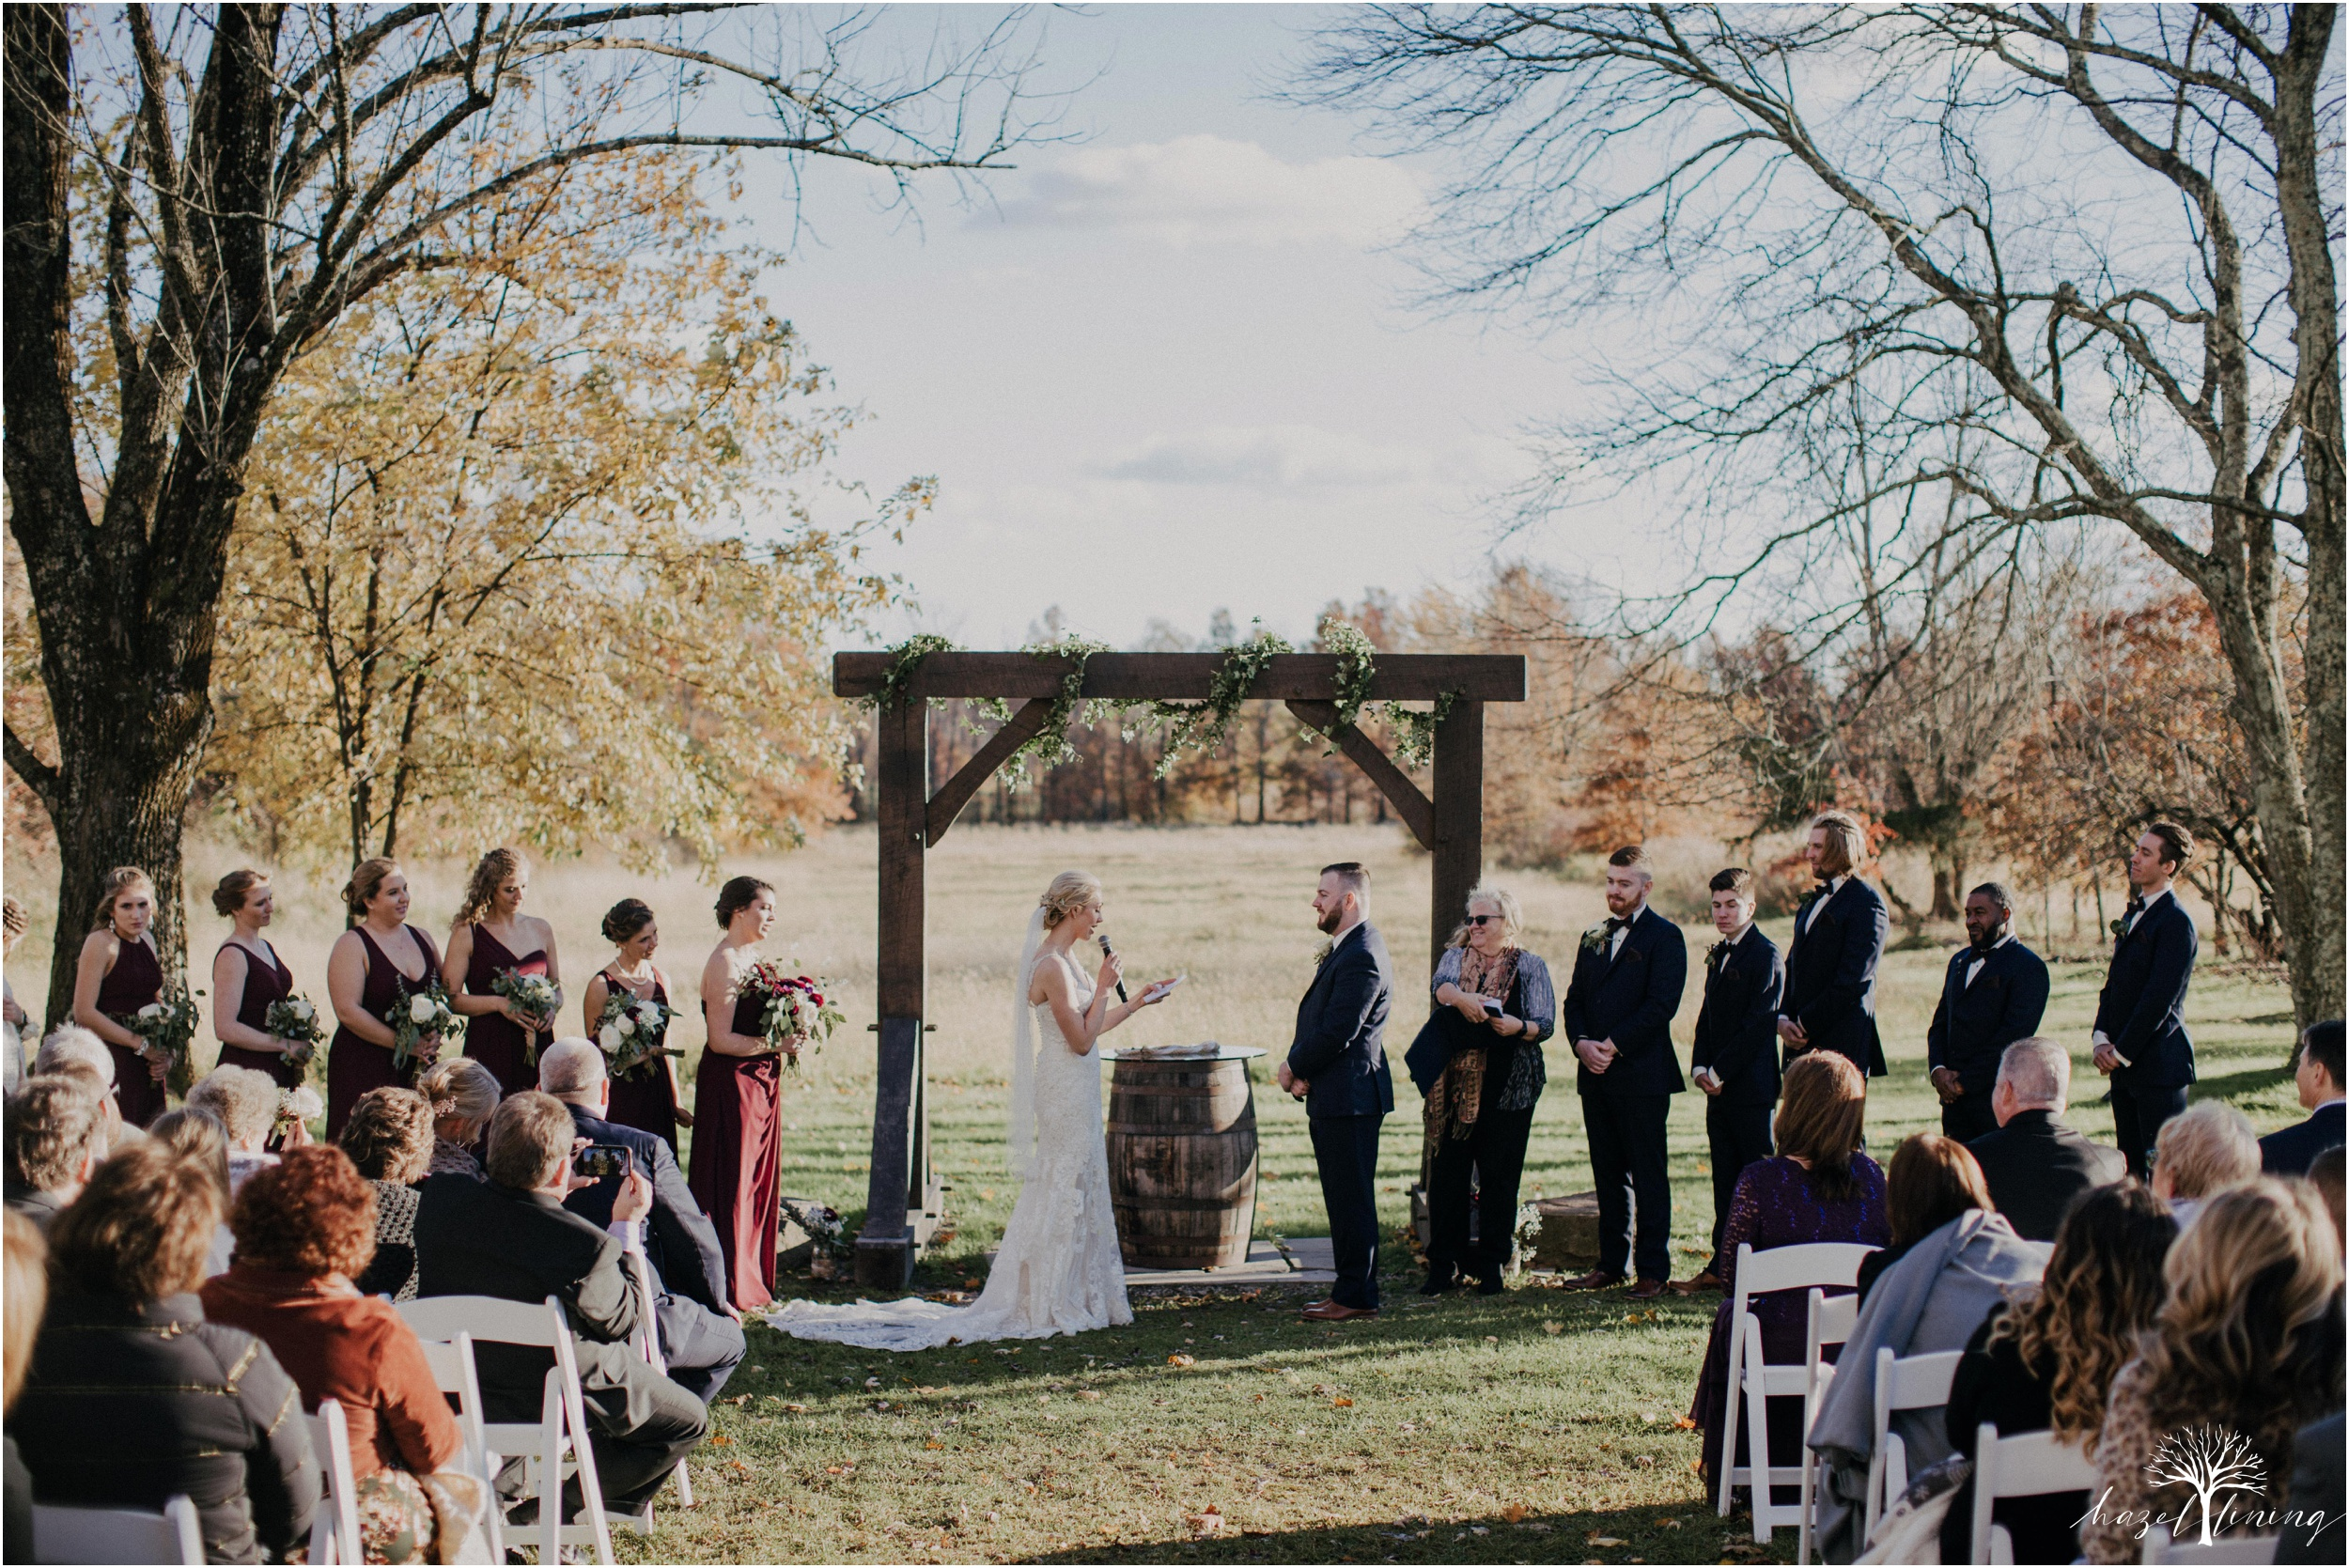 briana-krans-greg-johnston-farm-bakery-and-events-fall-wedding_0099.jpg